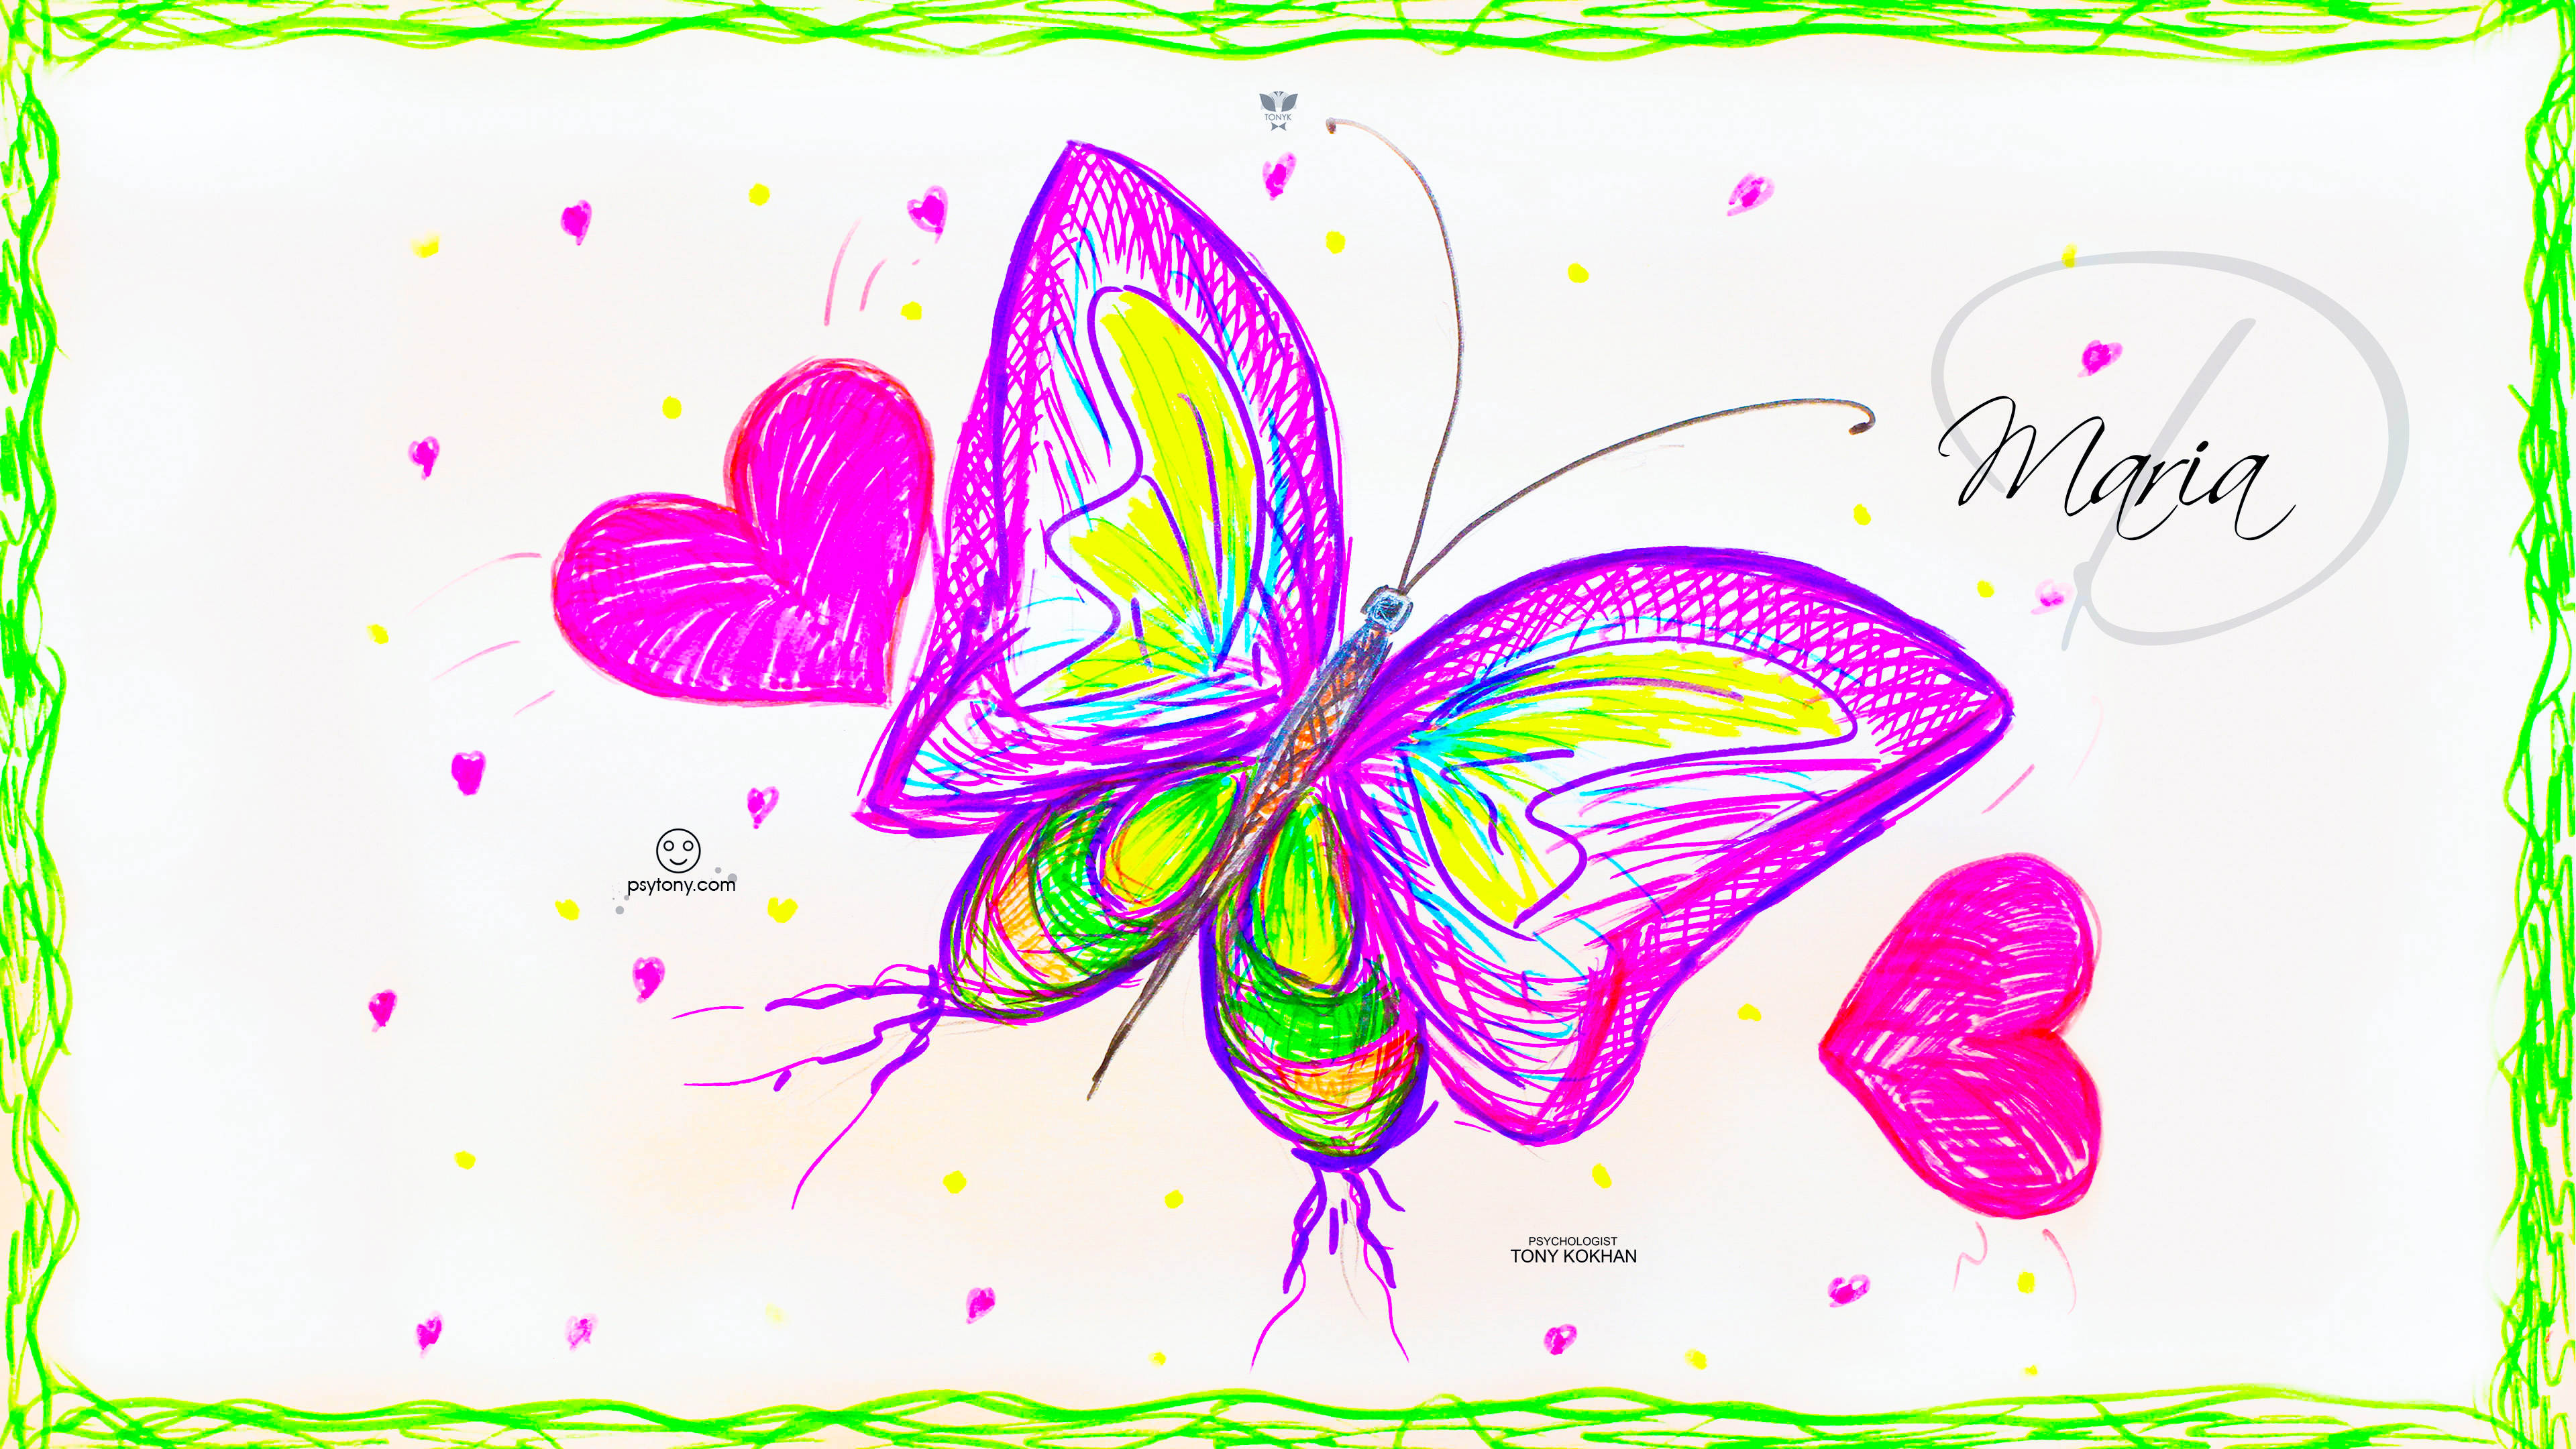 Maria-Soul-Girl-Butterfly-Super-Fly-Love-Heart-Art-Style-Picture-Drawing-With-Markers-2019-Multicolors-4K-Wallpapers-by-Psychologist-Tony-Kokhan-www.psytony.com-image